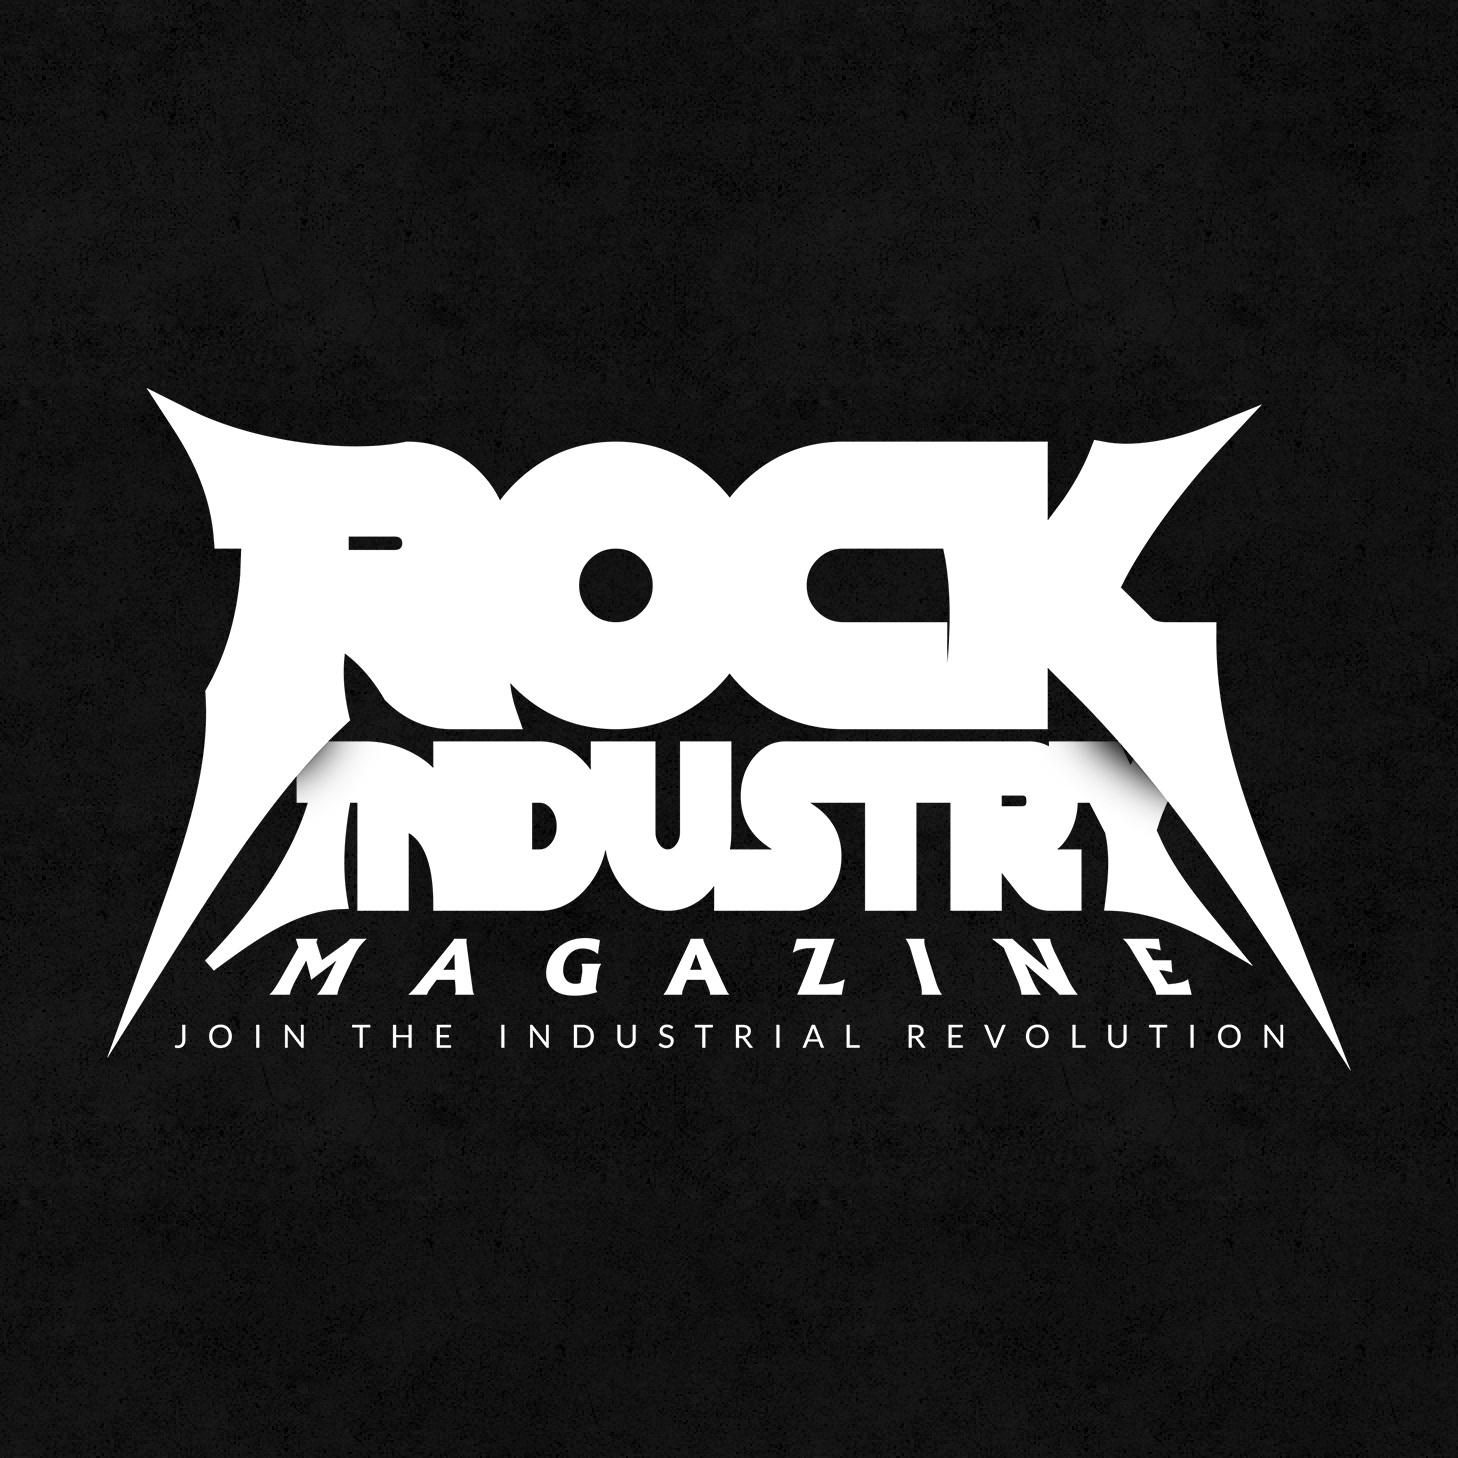 Rock Industry Looking for Editors.